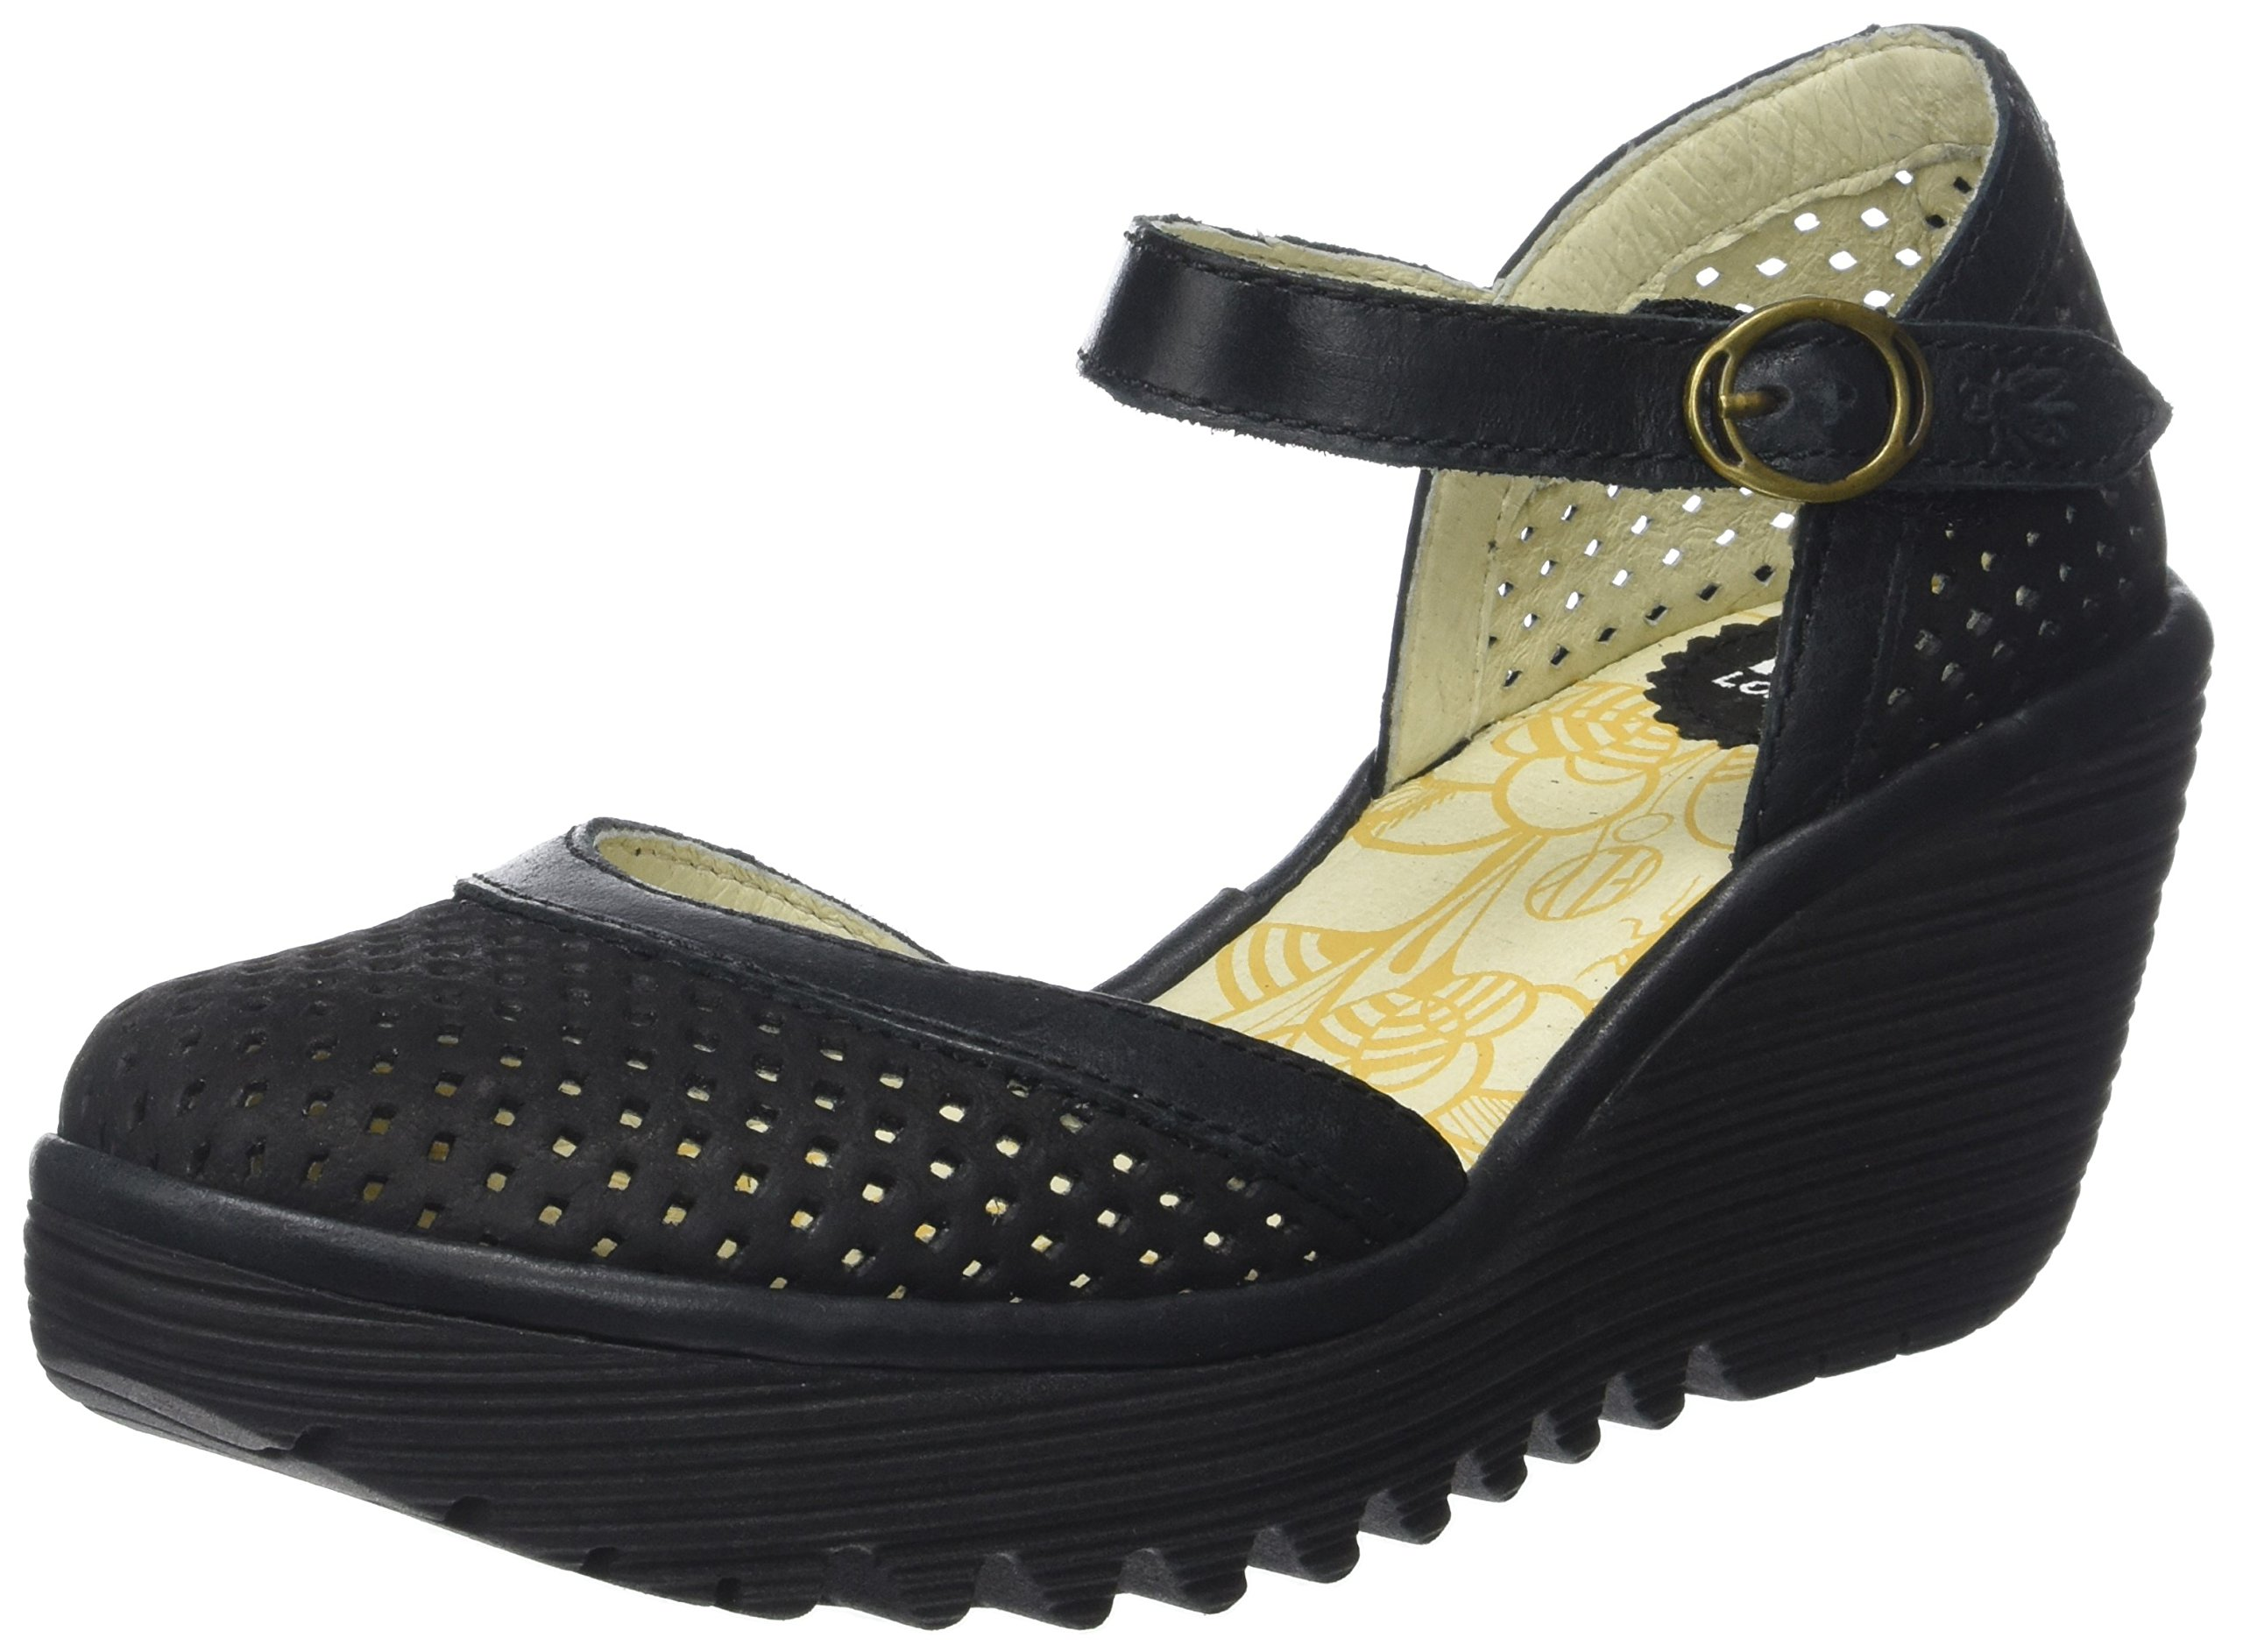 FLY London Womens Yupi Wedge Heel Leather Cut Out Buckle Summer Shoes - Black/Black - 6